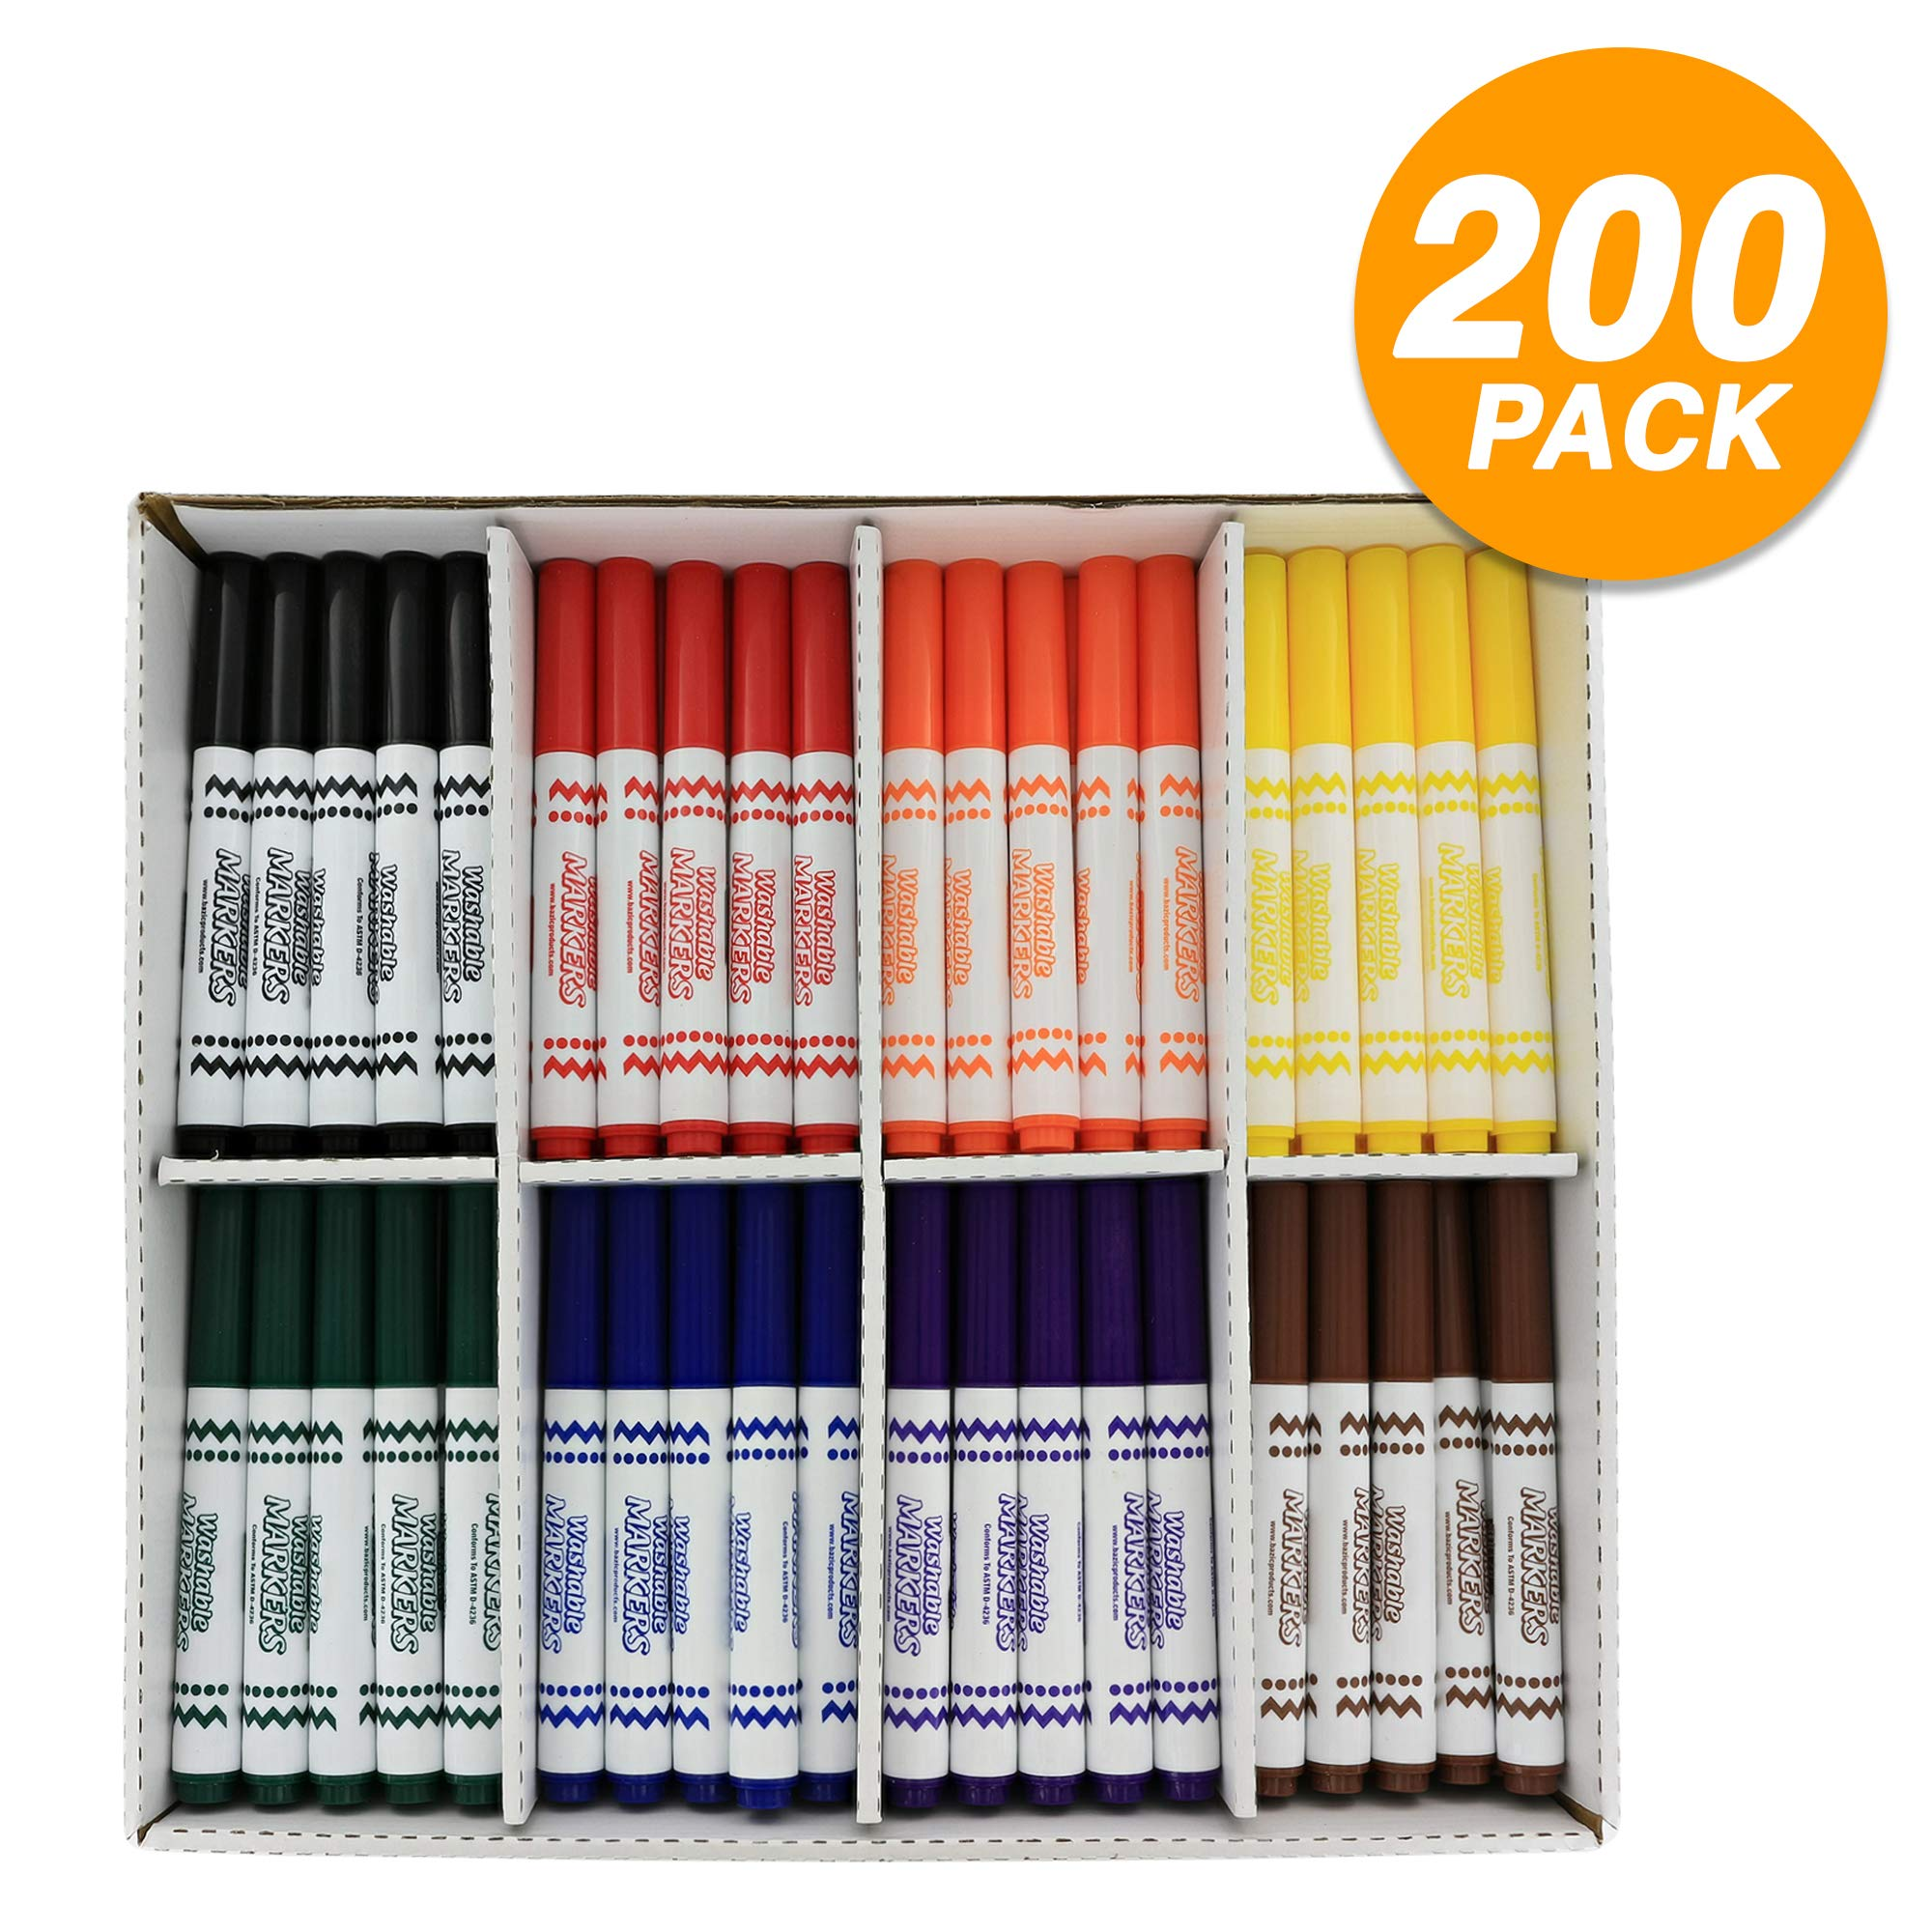 Emraw Super Broad Line Jumbo Washable Markers Dry Erase Marker Whiteboard Pens Set Fine Point Conical Tip for Kids Classroom Children - Great for School, Home, Office - Classroom Pack (200 Ct)